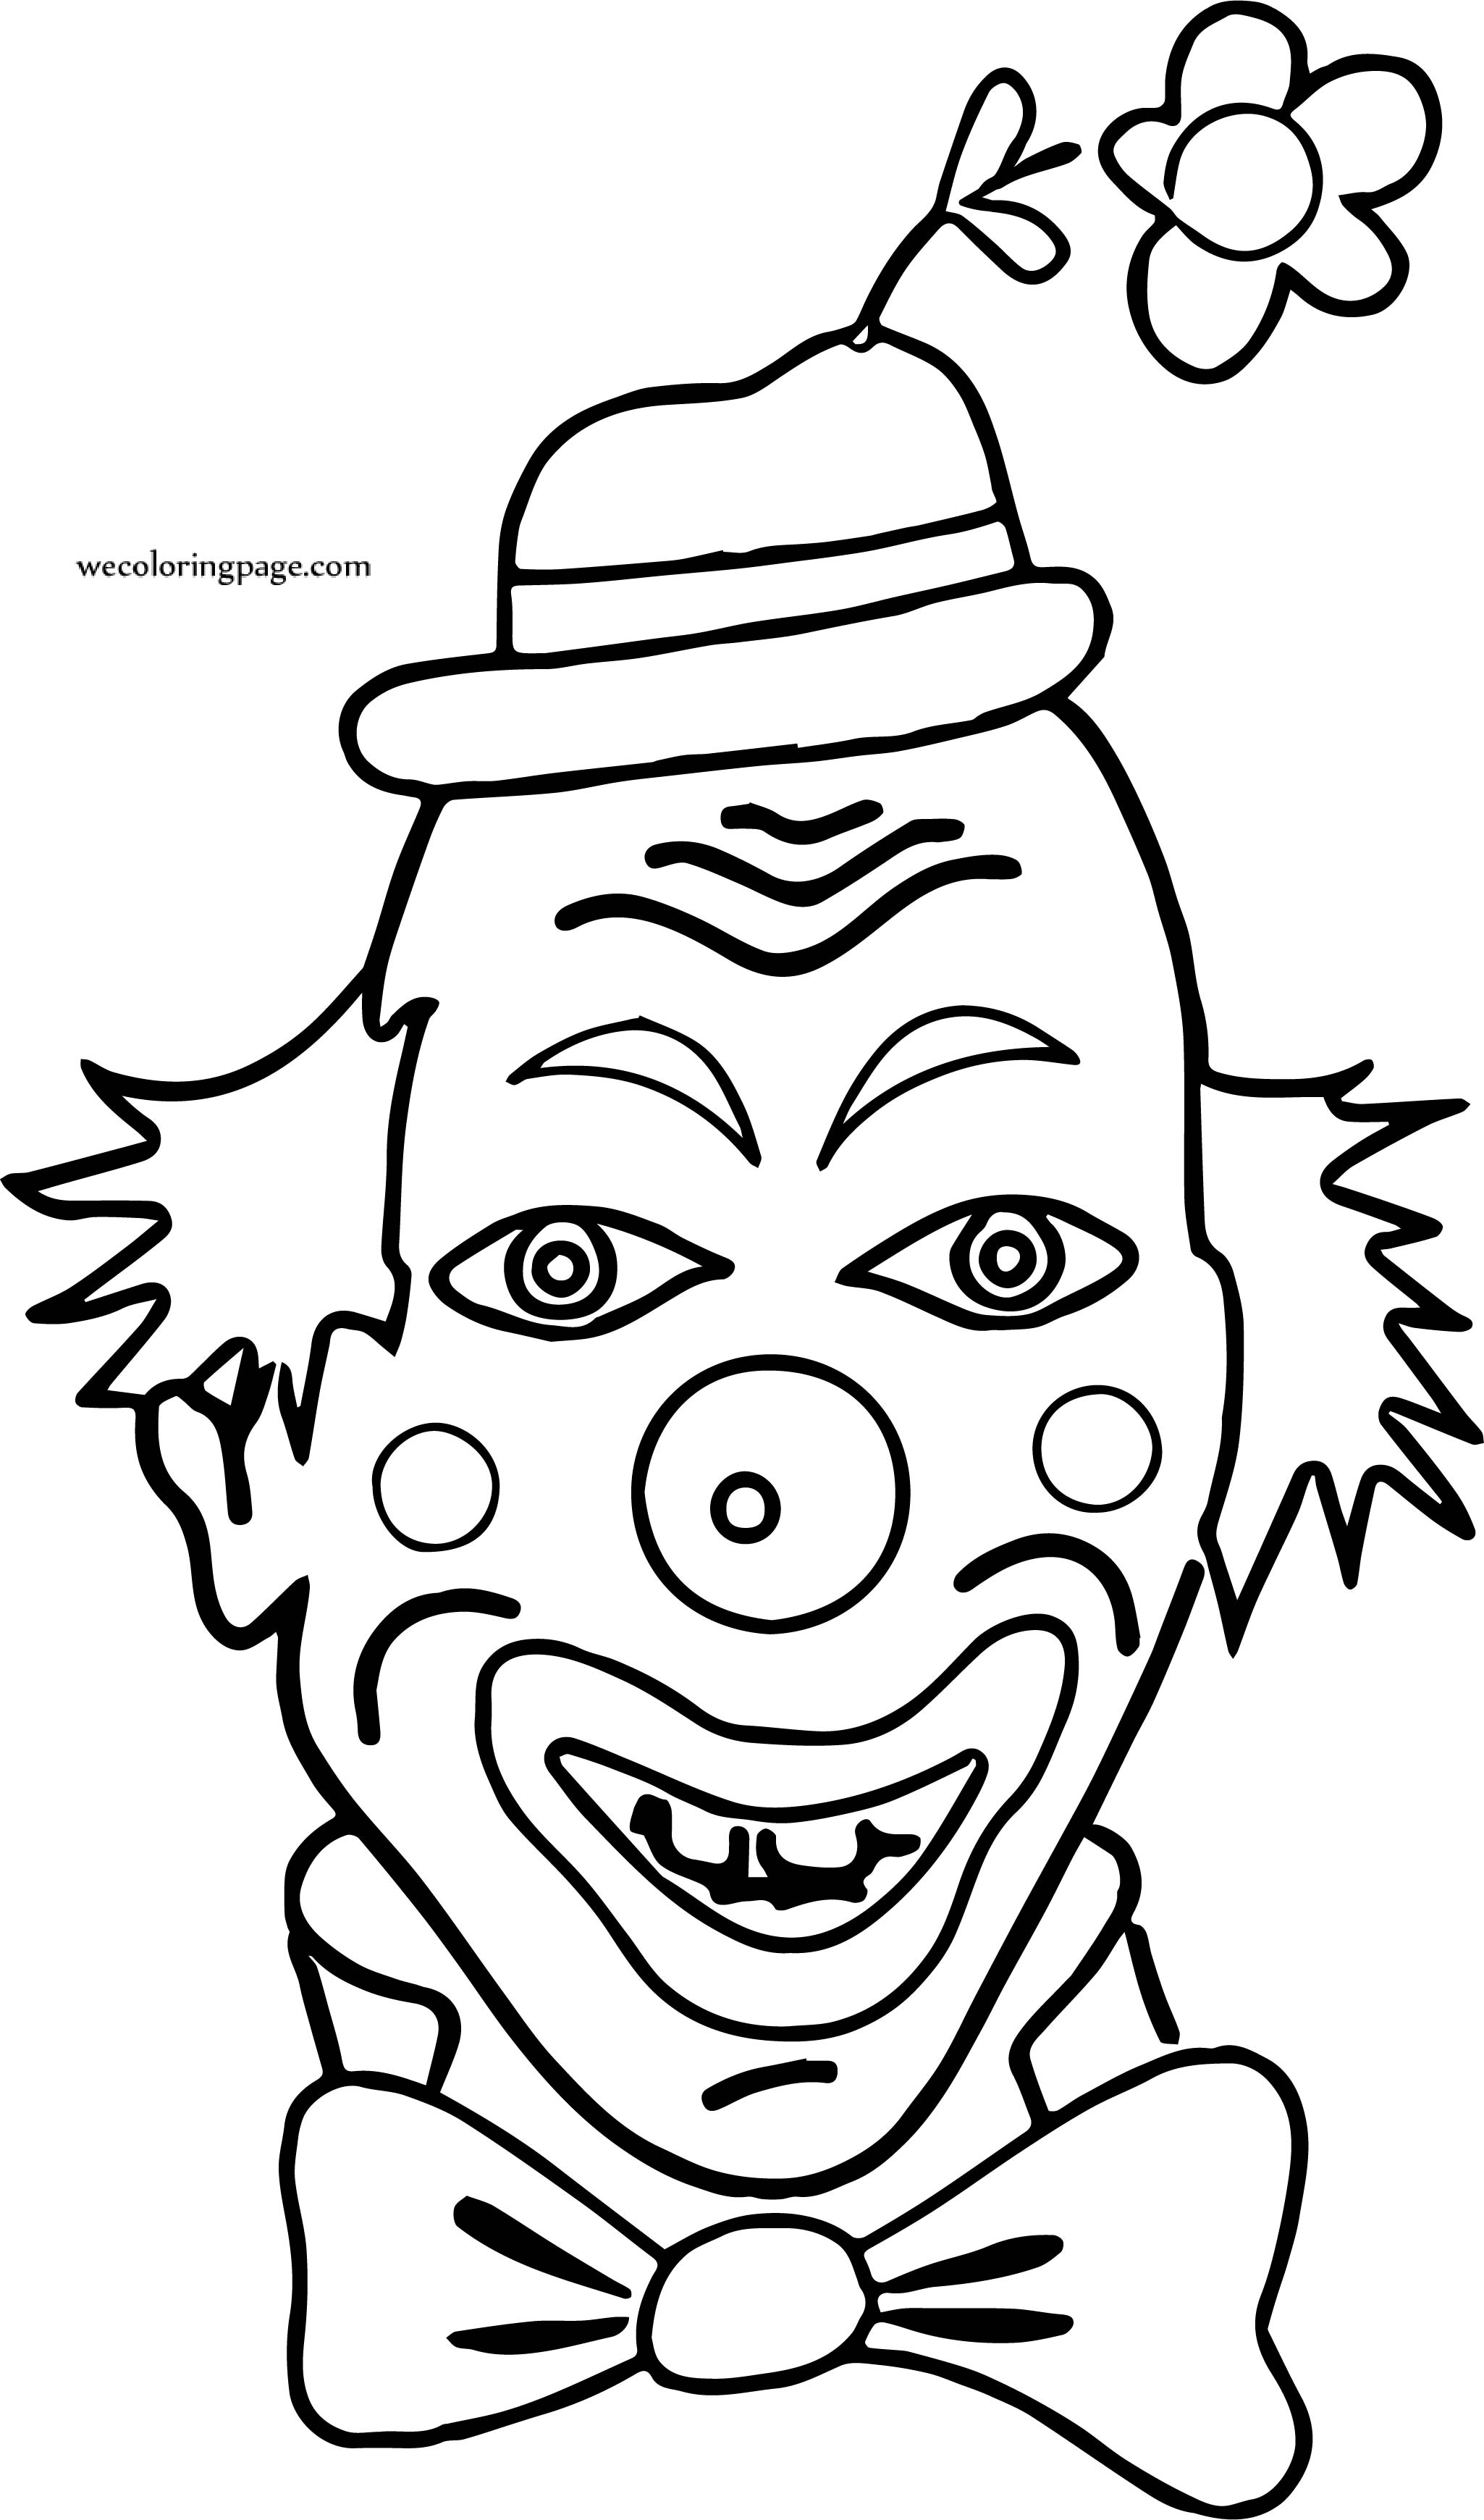 Clown Not Funny Coloring Page | Wecoloringpage.com